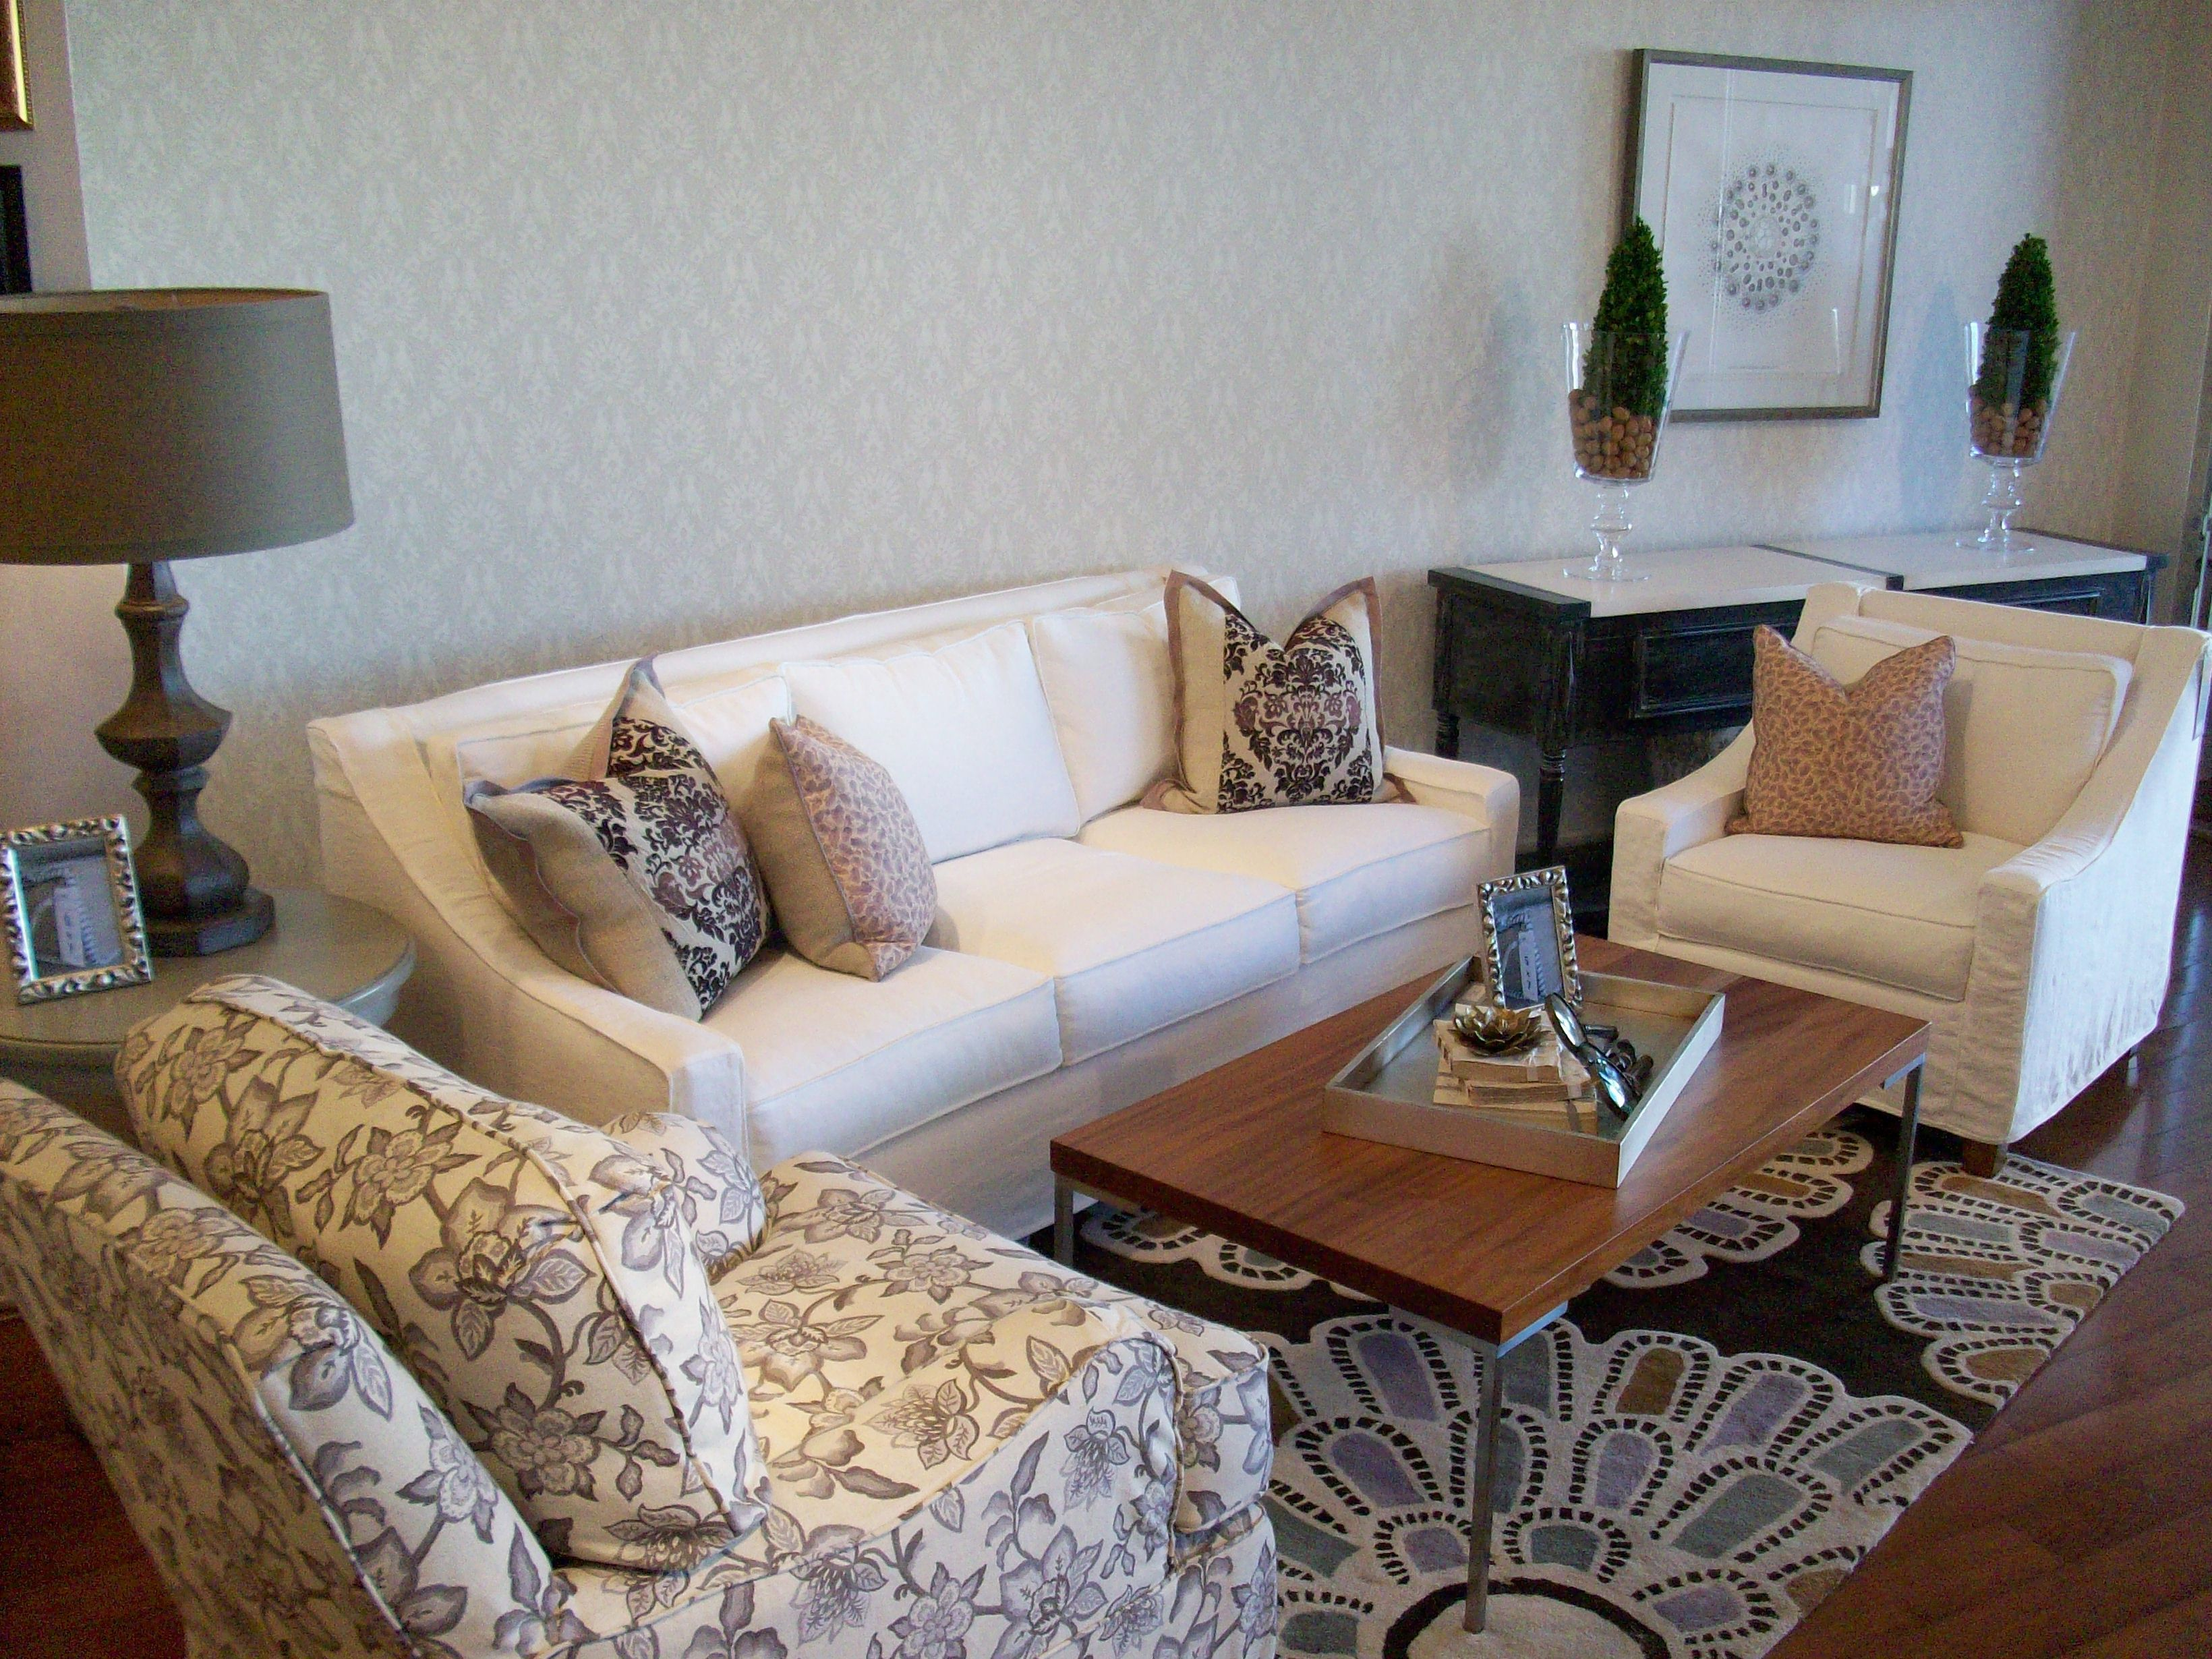 Quatrine Houston New Grace sofa and New Grace chair in cream